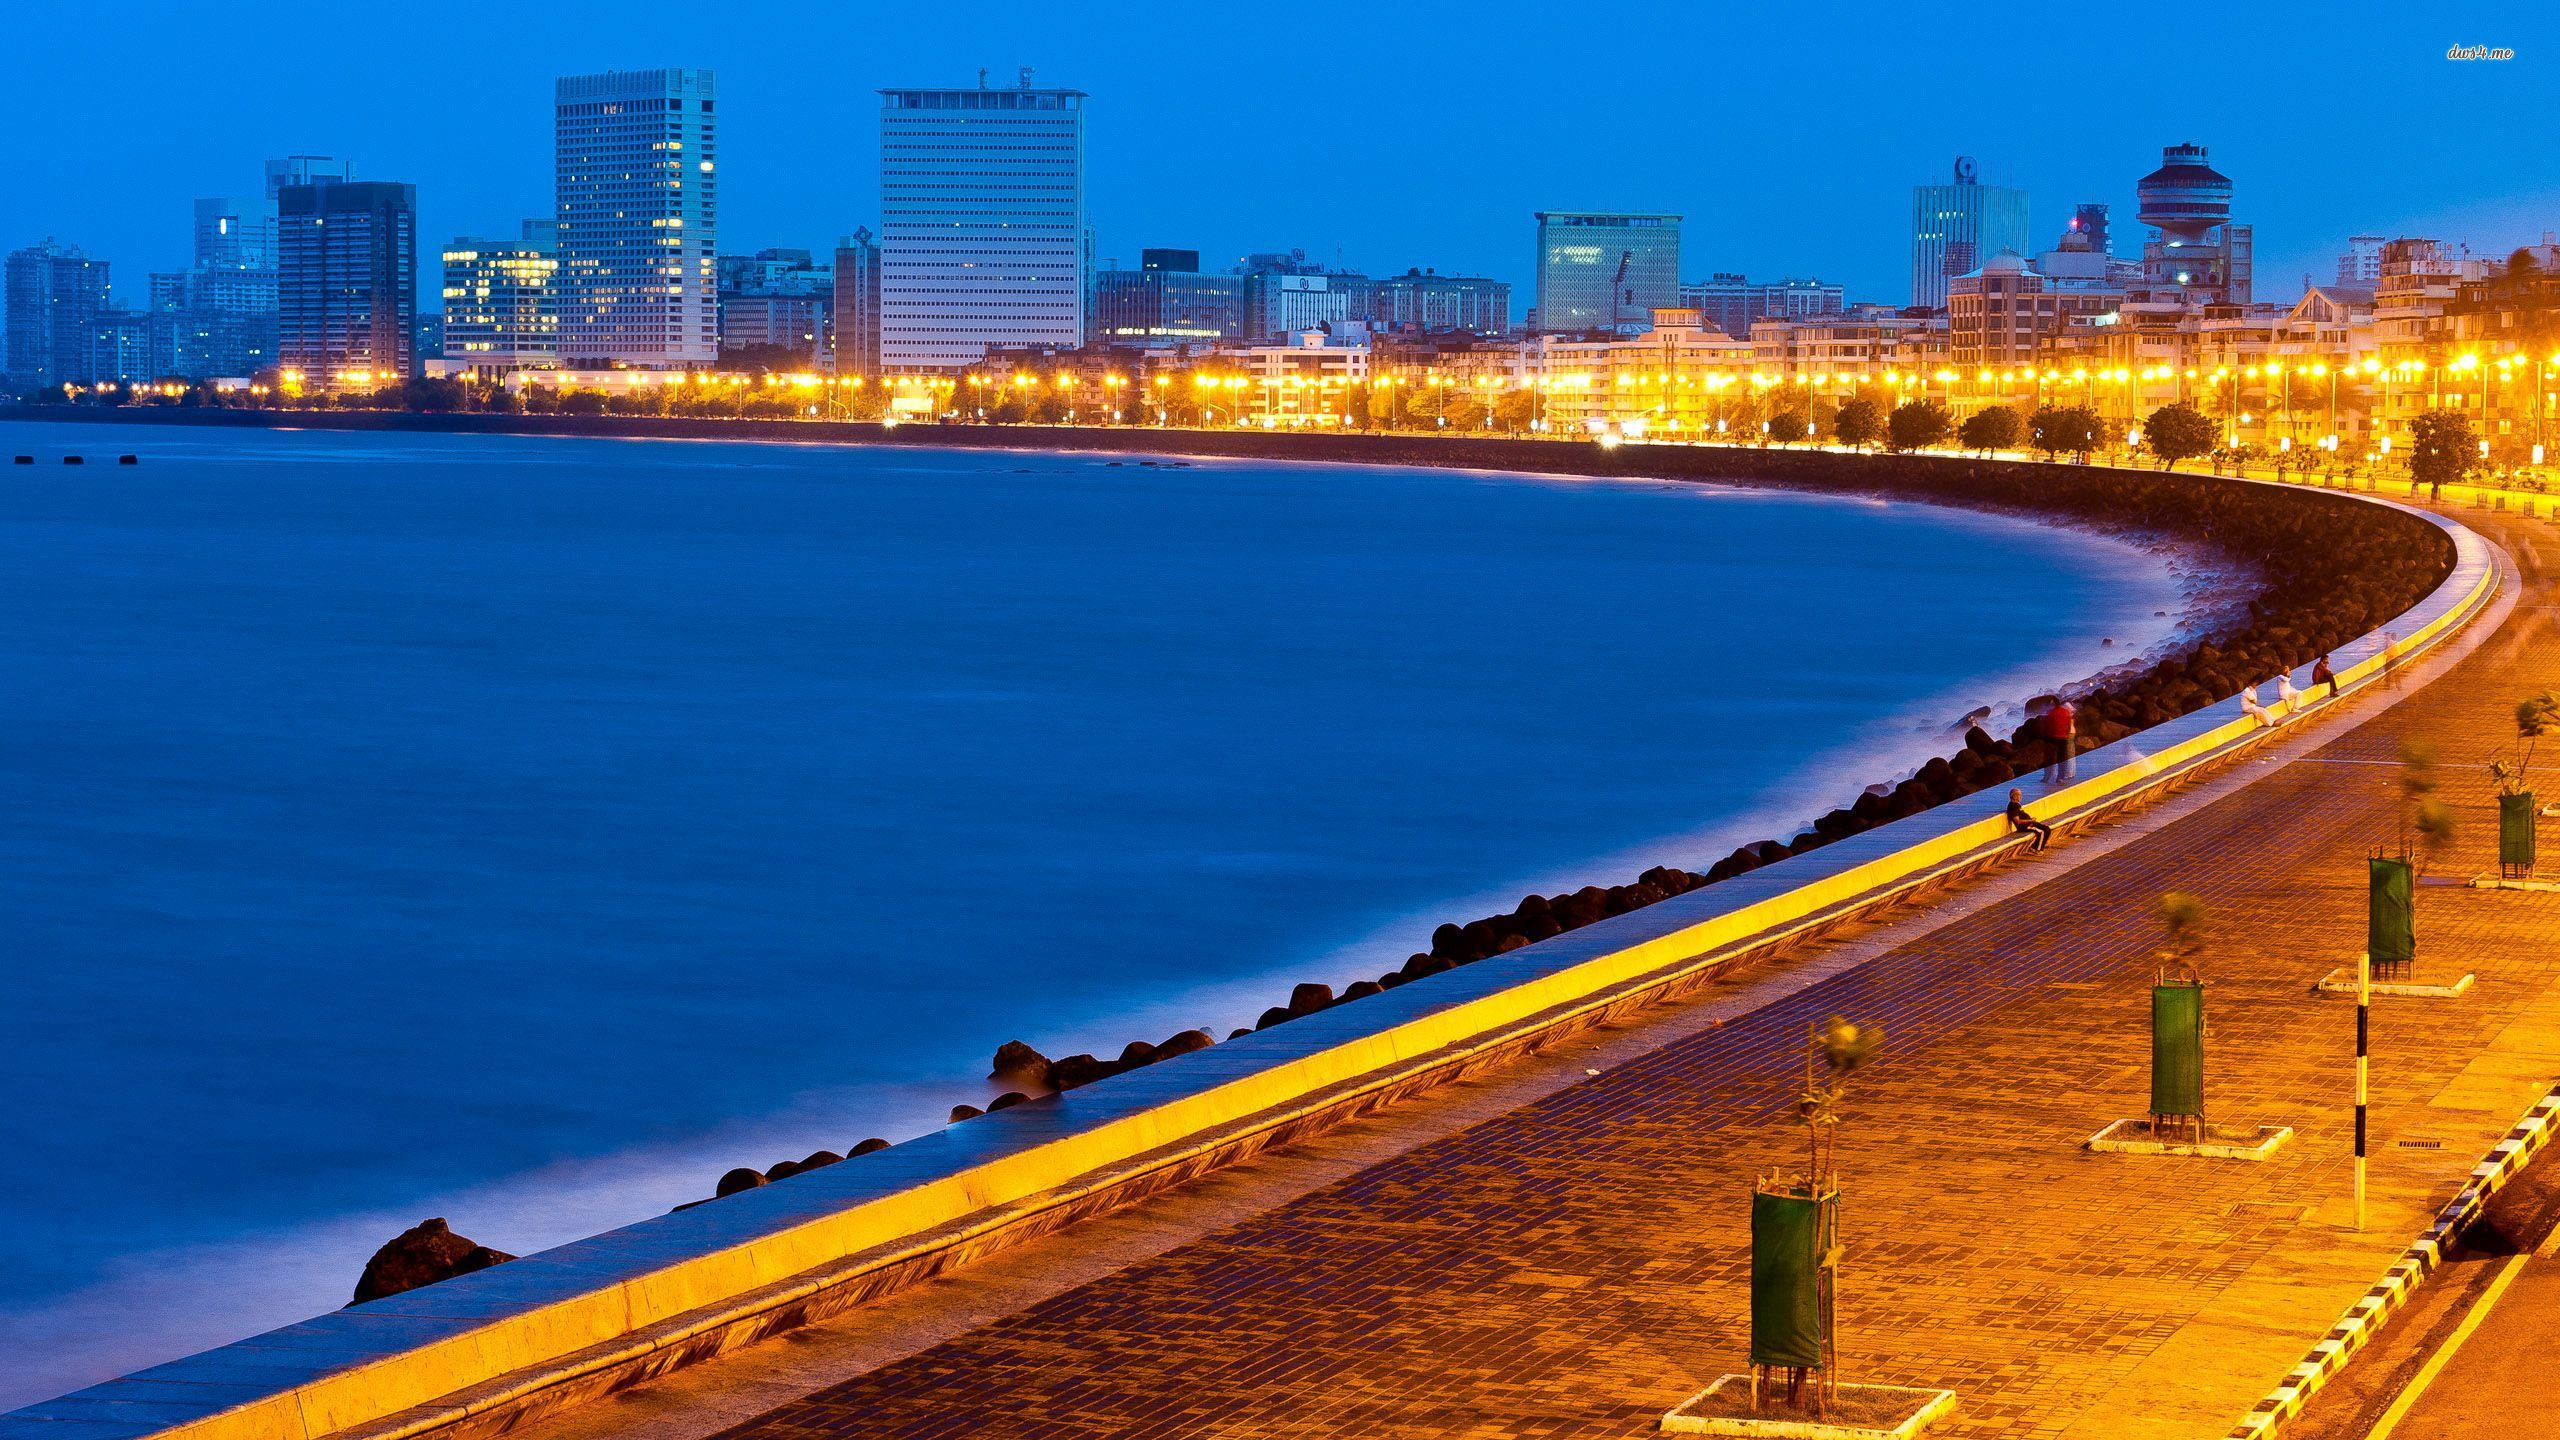 Mumbai Wallpapers HD Wallpapers Available For Download 2560x1440